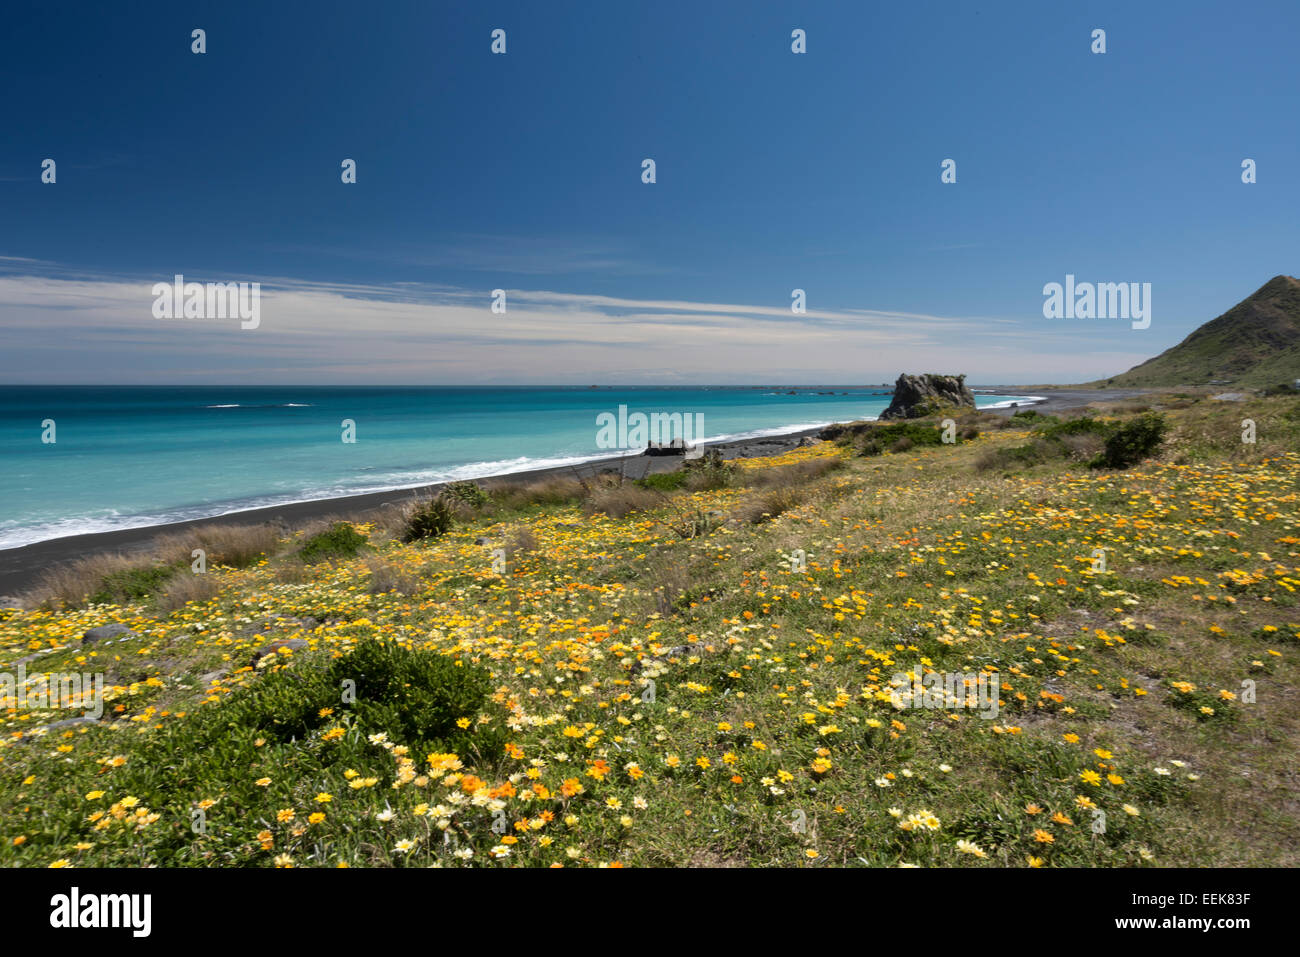 flower meadow near Cape Palliser, newzealand,, Blumenwiese am Cape Palliser, Neuseeland, Nordinsel - Stock Image